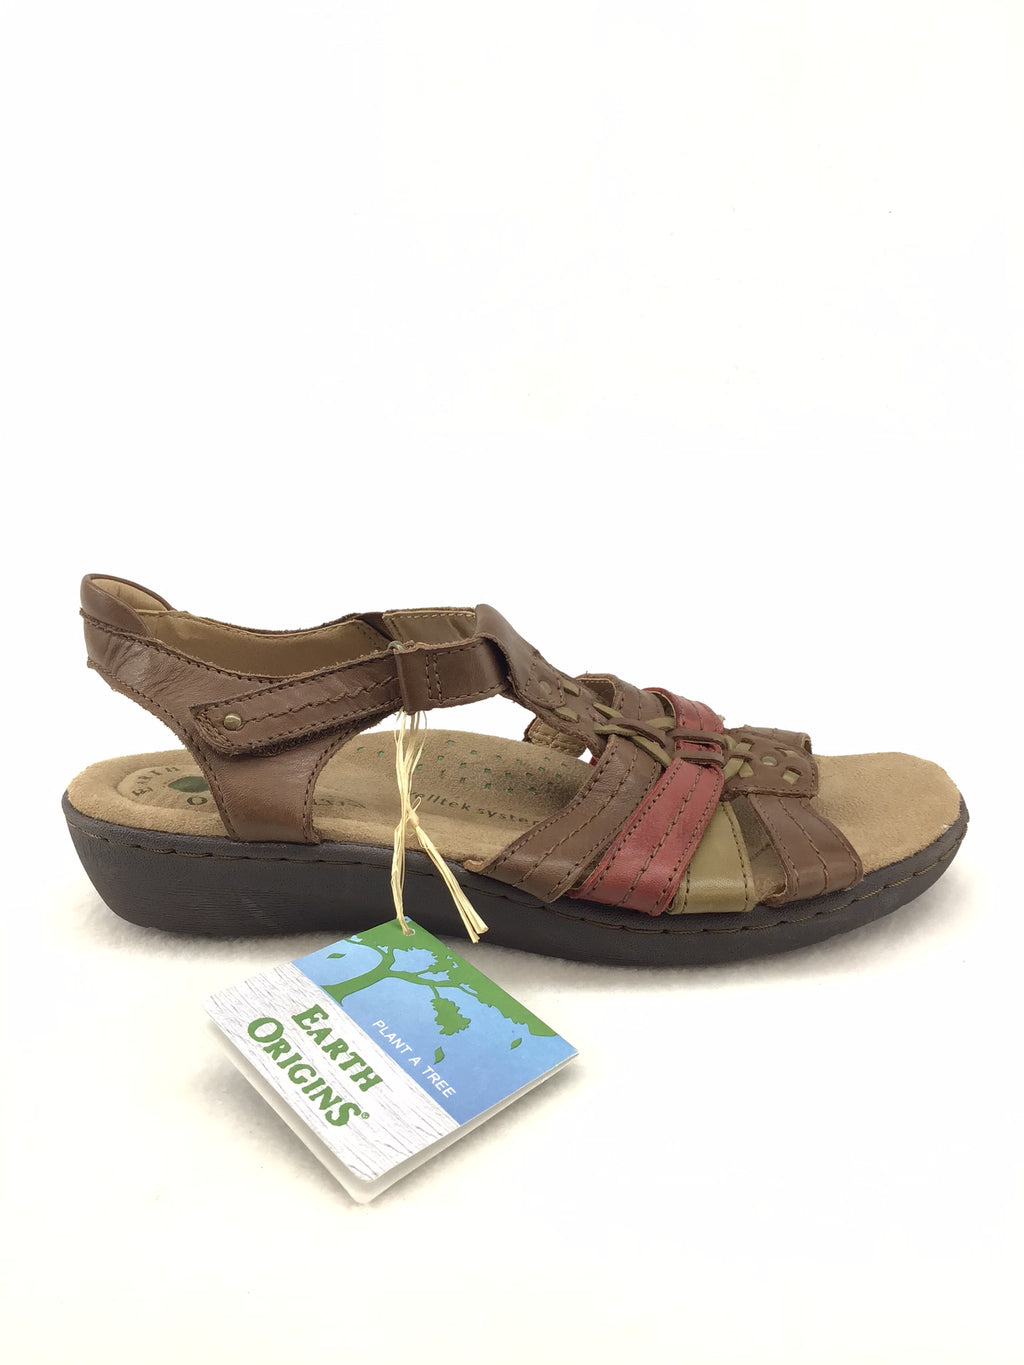 Earth Origins Amelie Sandals Size 10M